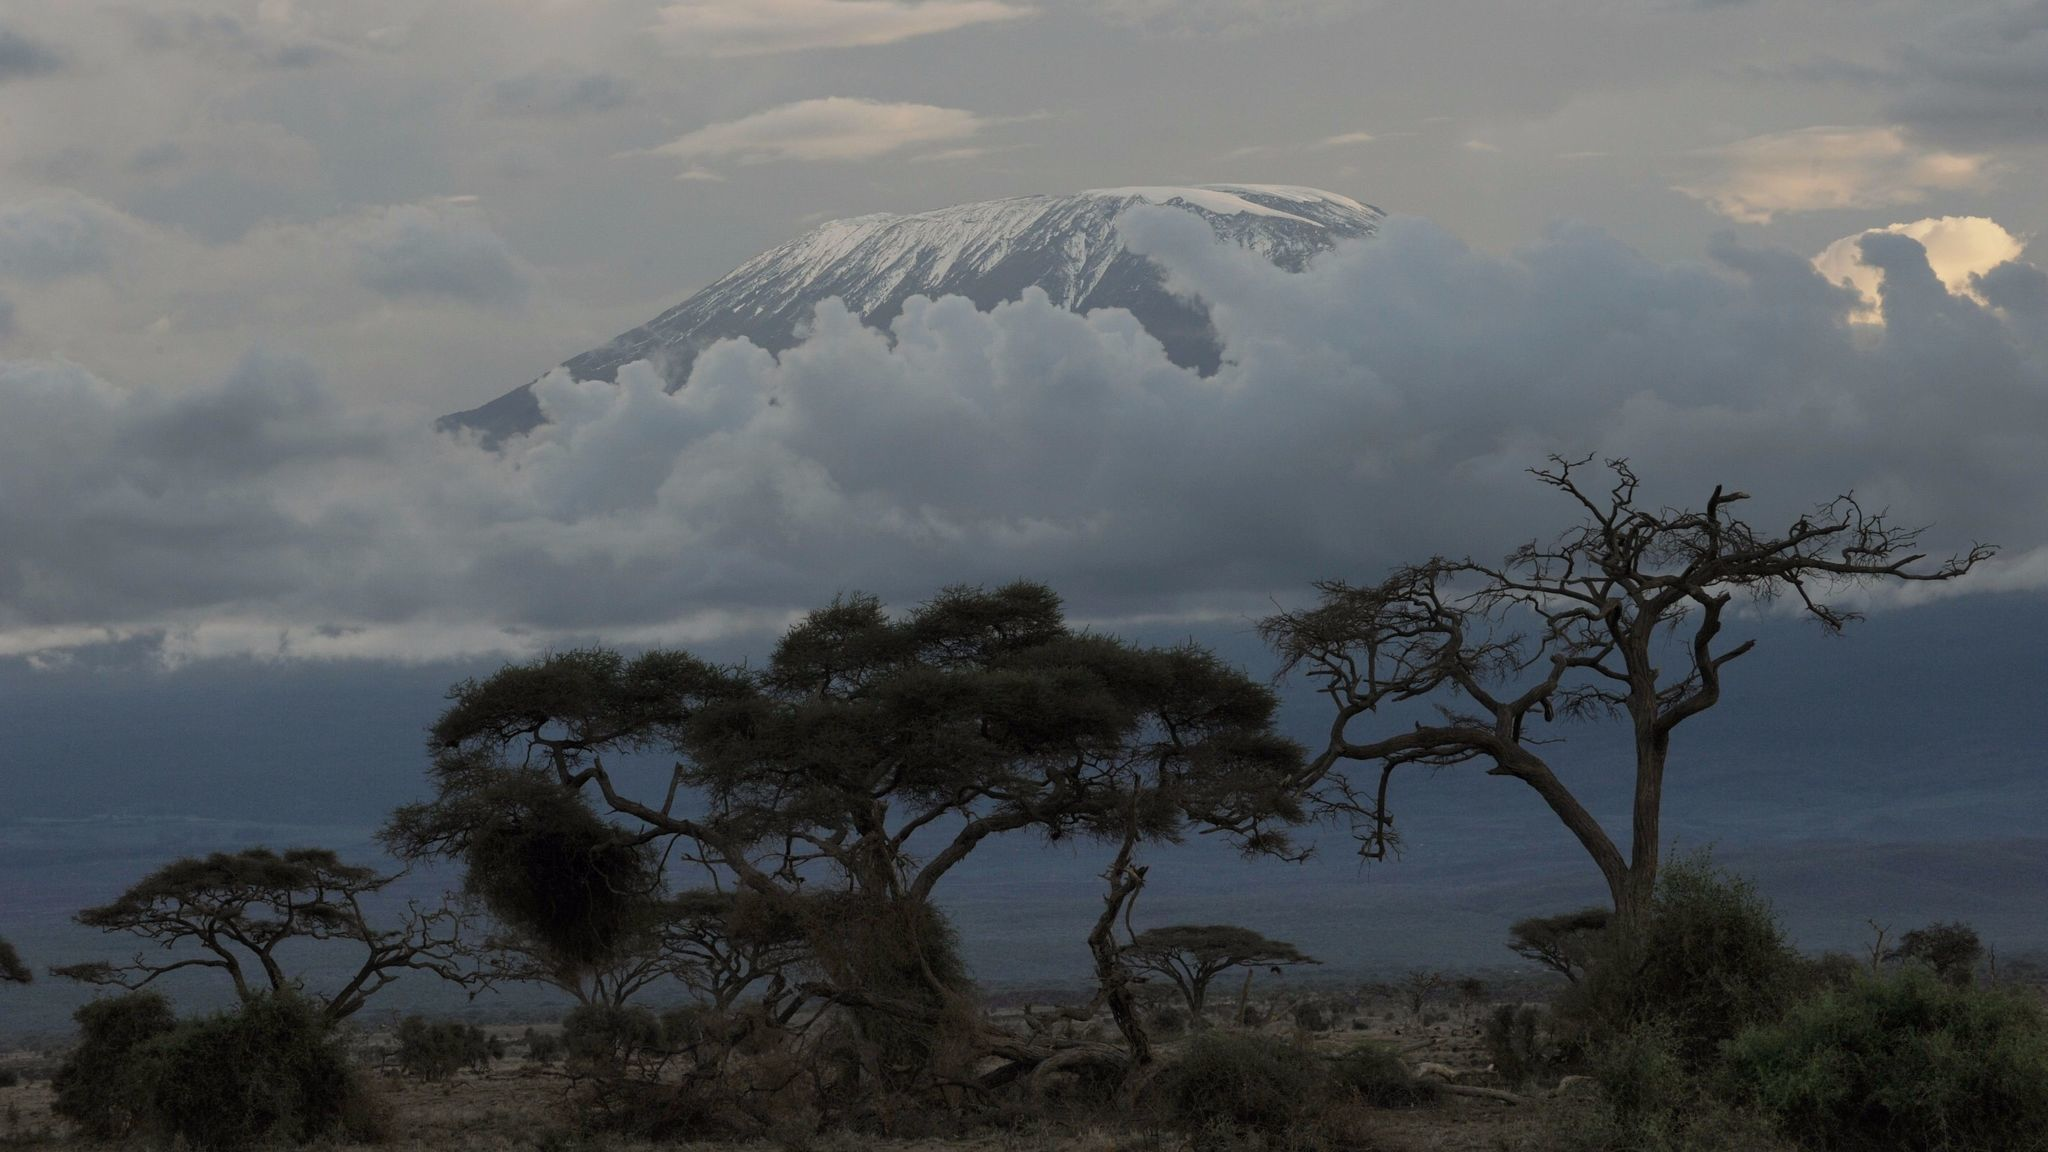 Africa's highest mountain, Mt. Kilimanjaro, is seen above clouds in late afternoon.